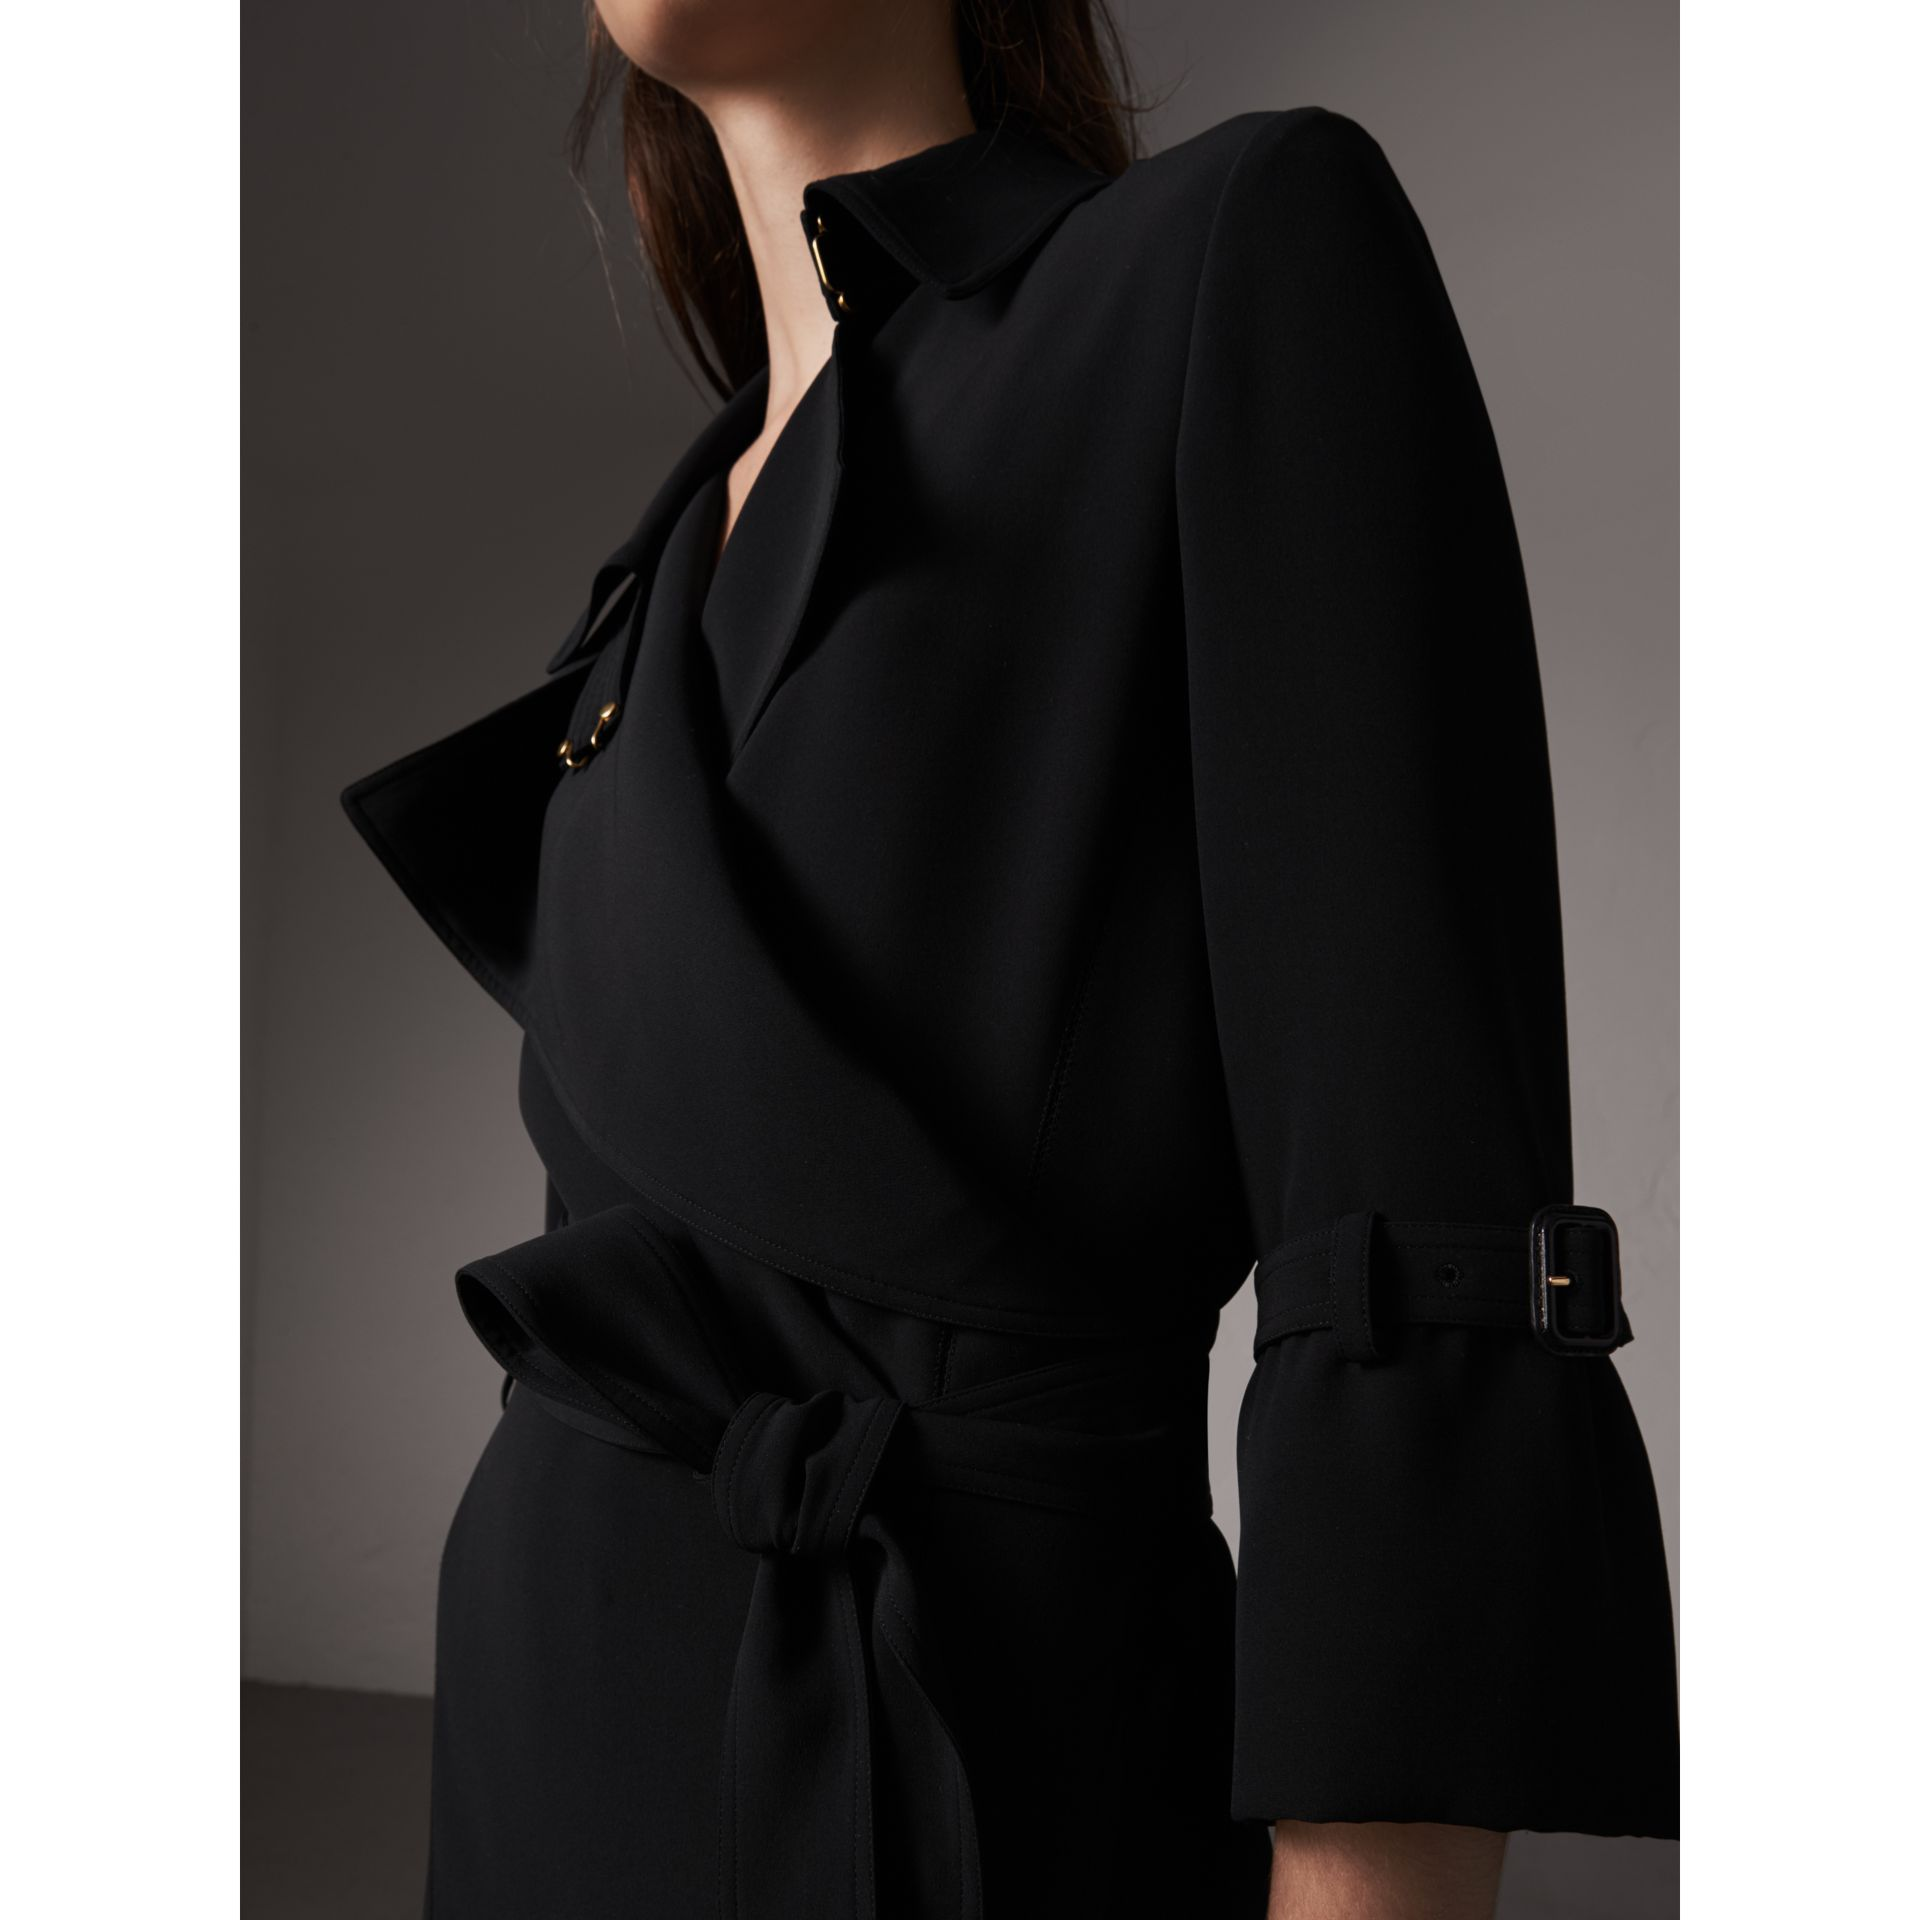 Silk Georgette Trench Wrap Dress in Black - Women | Burberry - gallery image 2